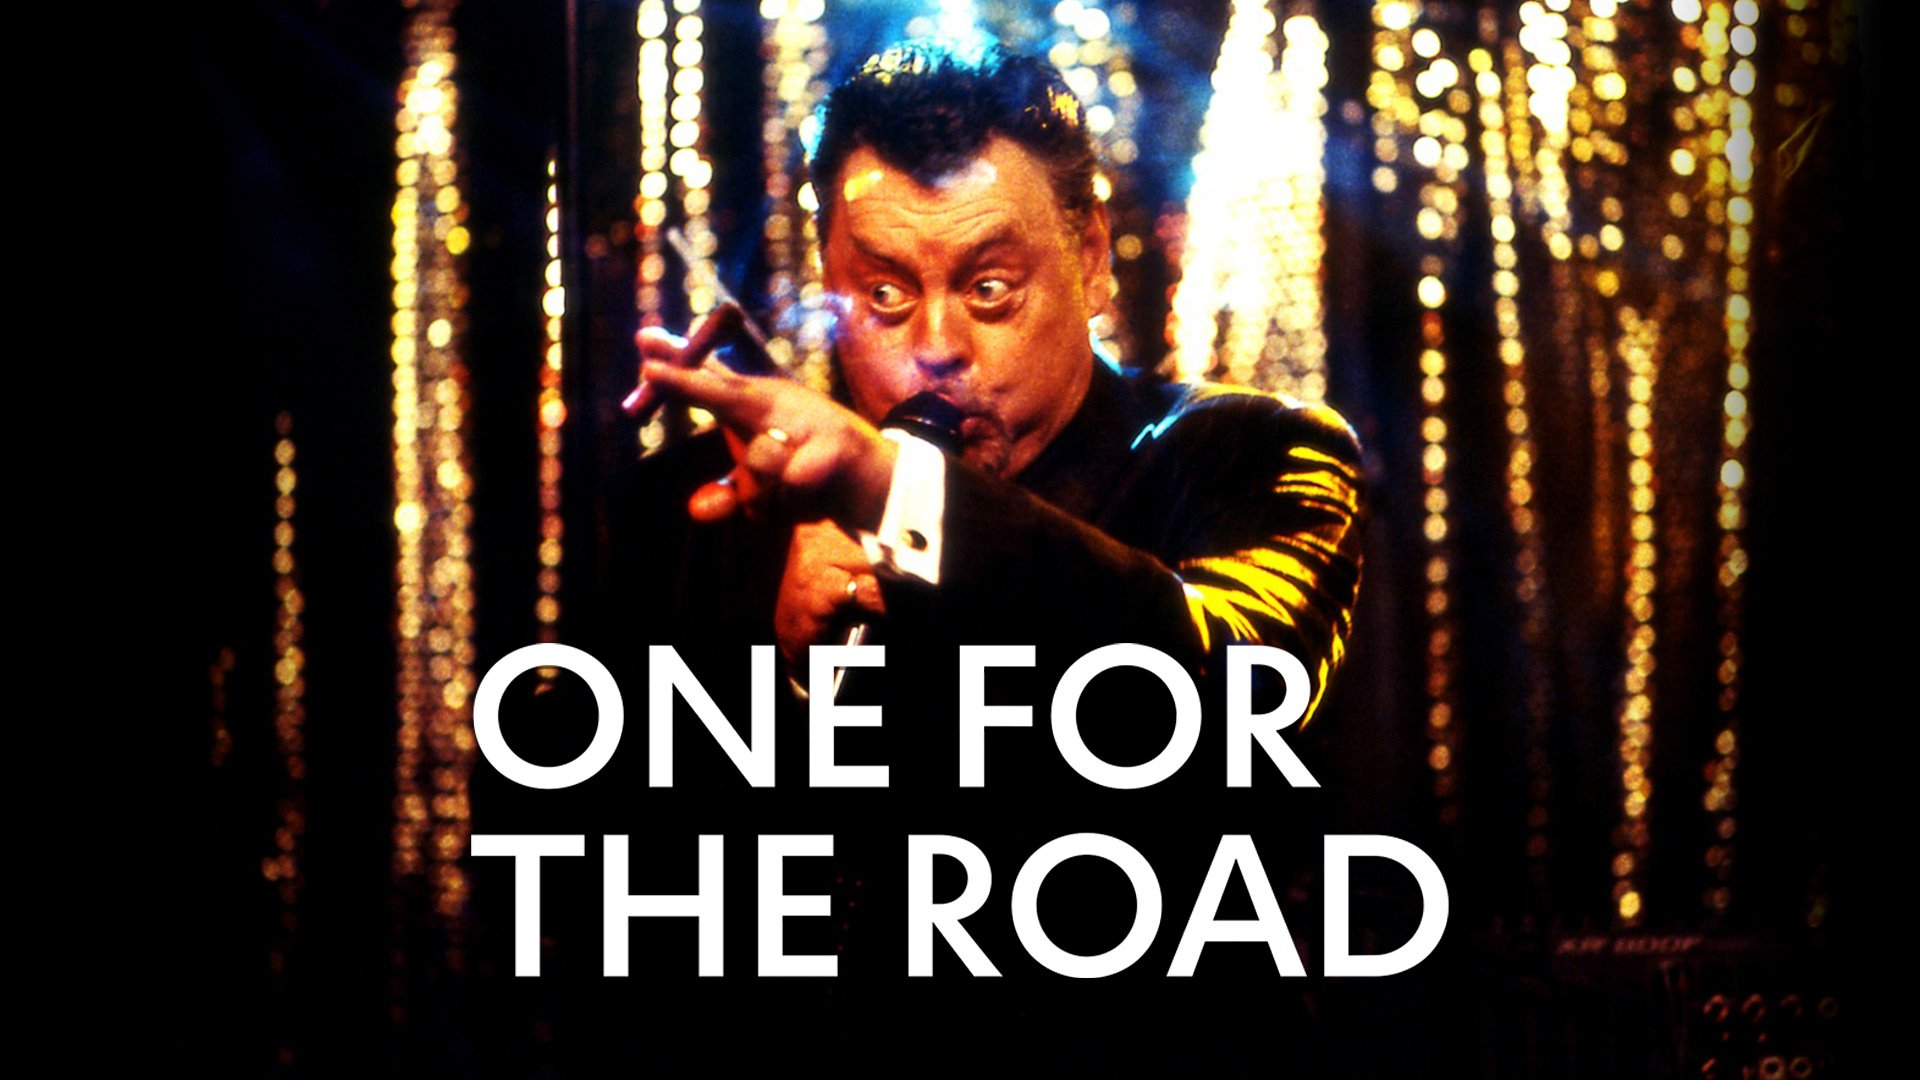 One For The Road on BritBox UK